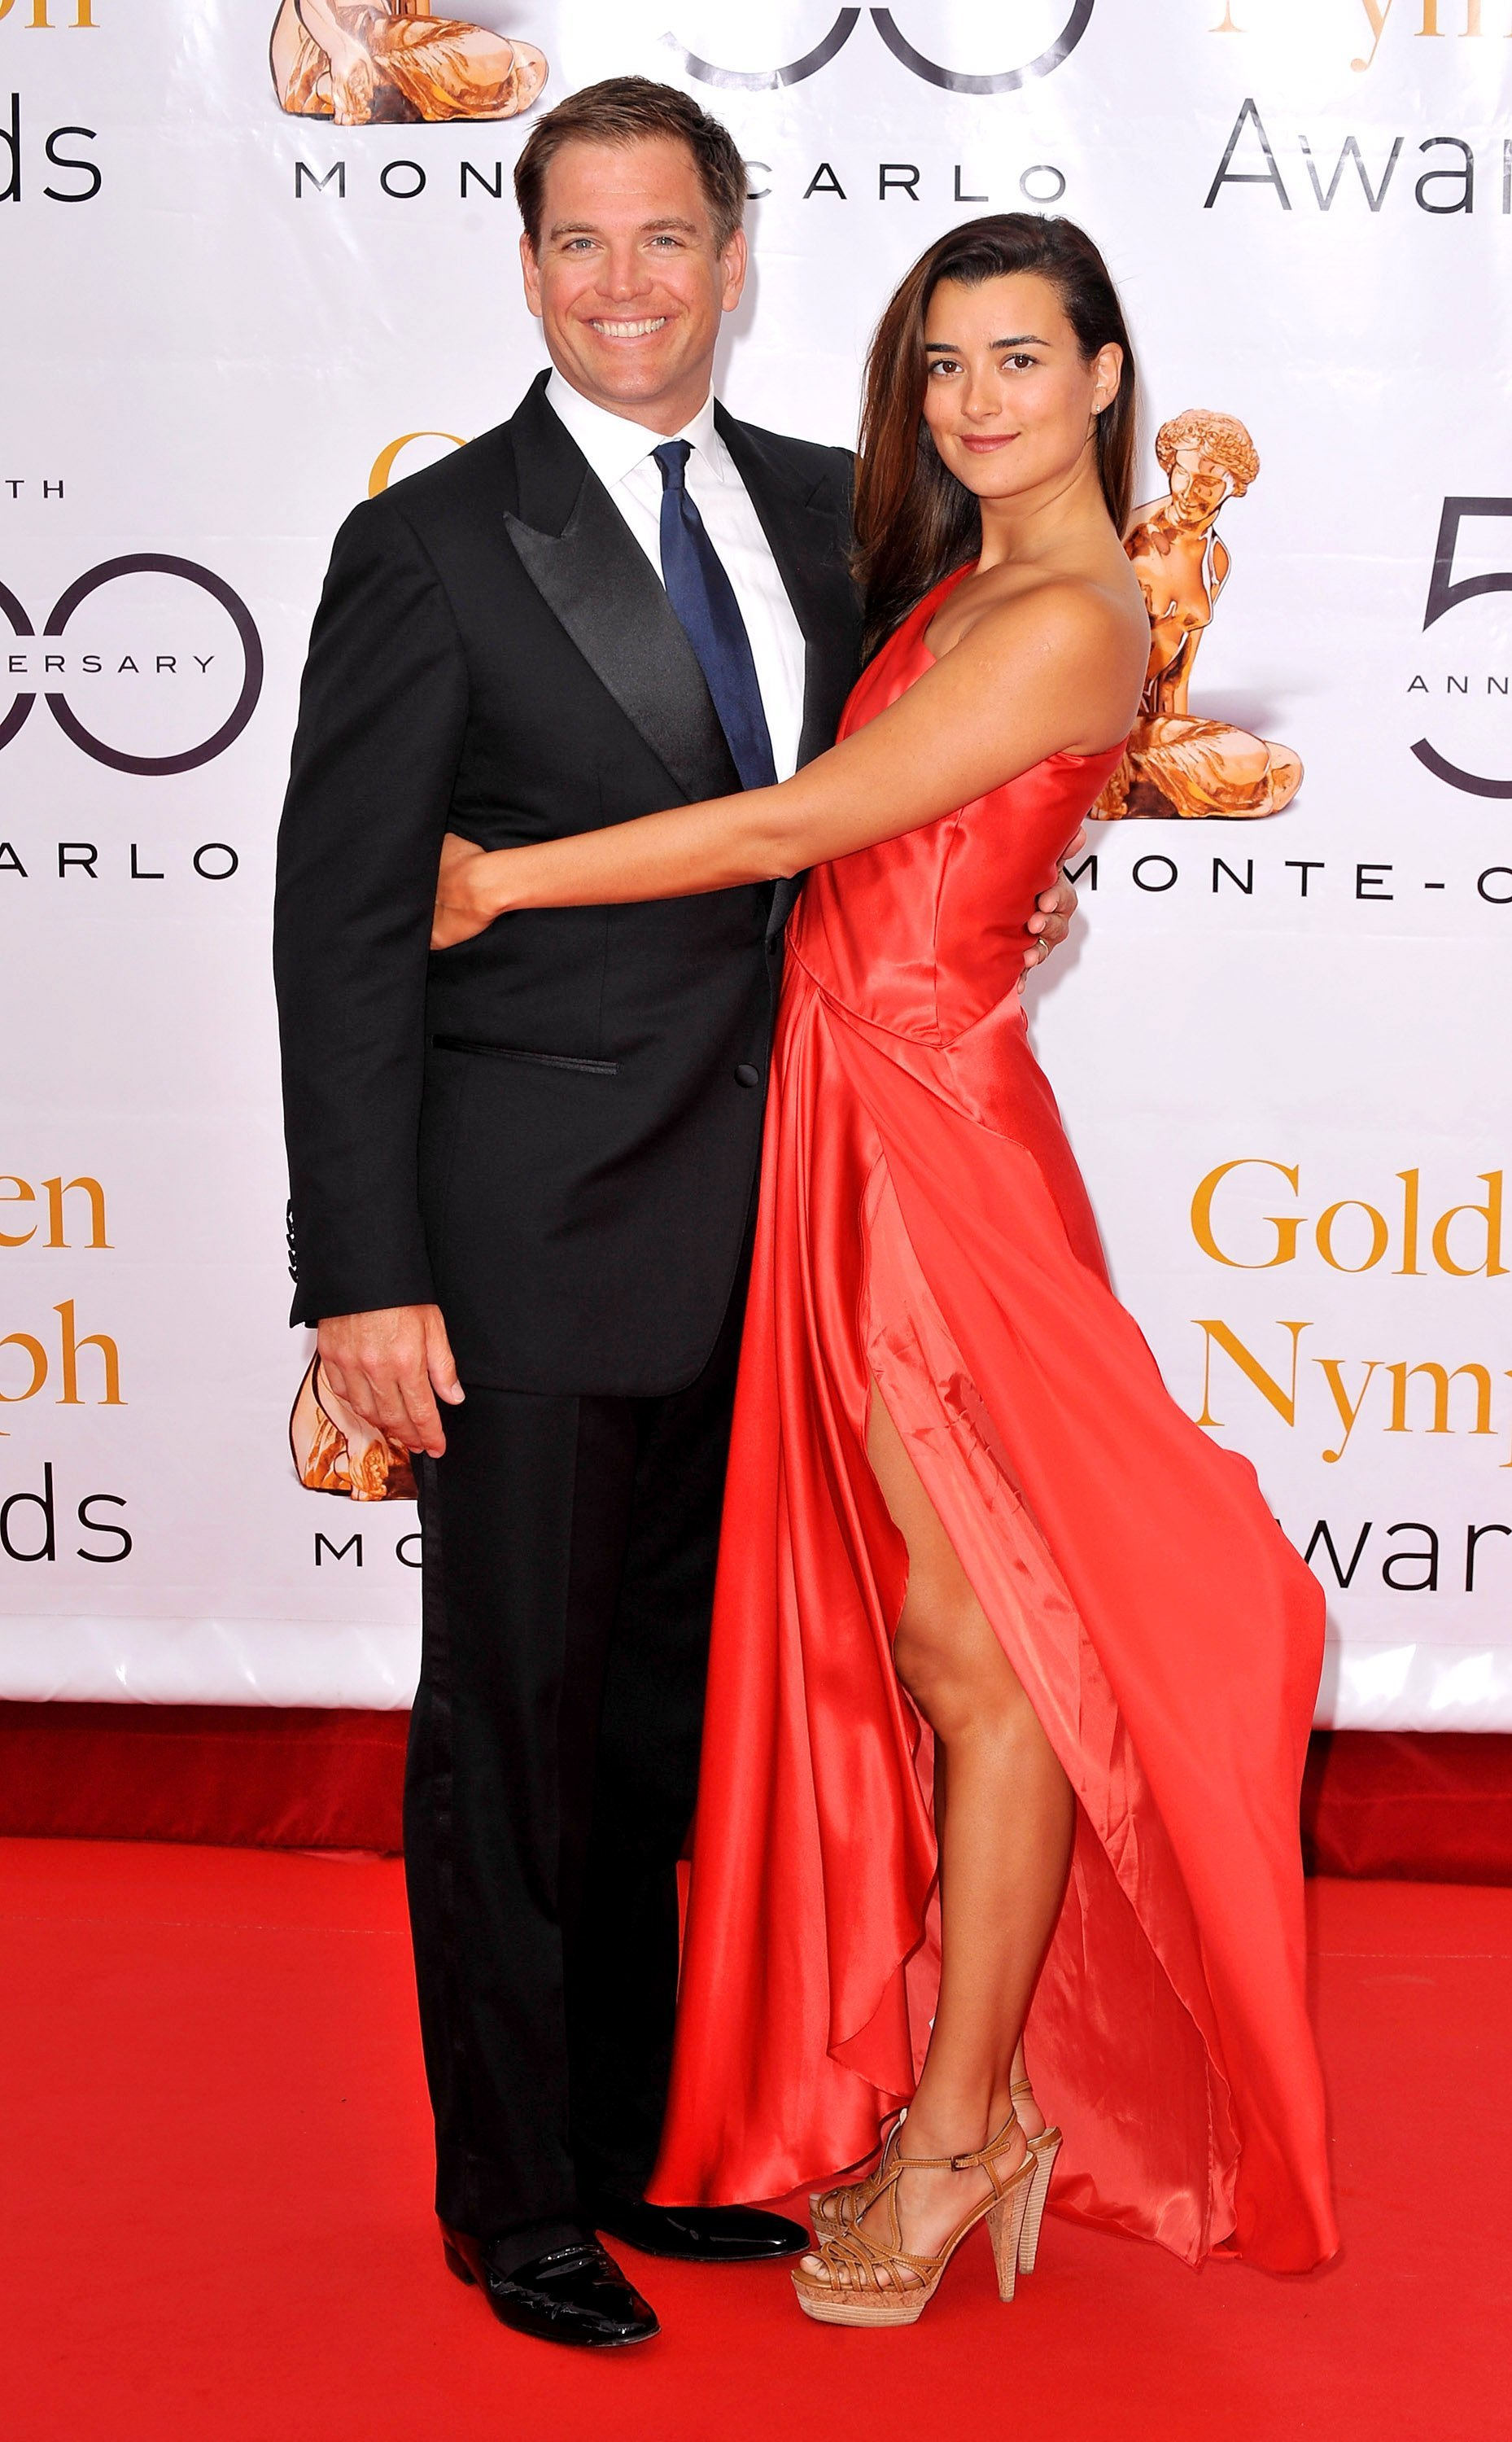 Michael Weatherly and Cote de Pablo at the 2010 Monte Carlo Television Festival | Photo: Getty Images